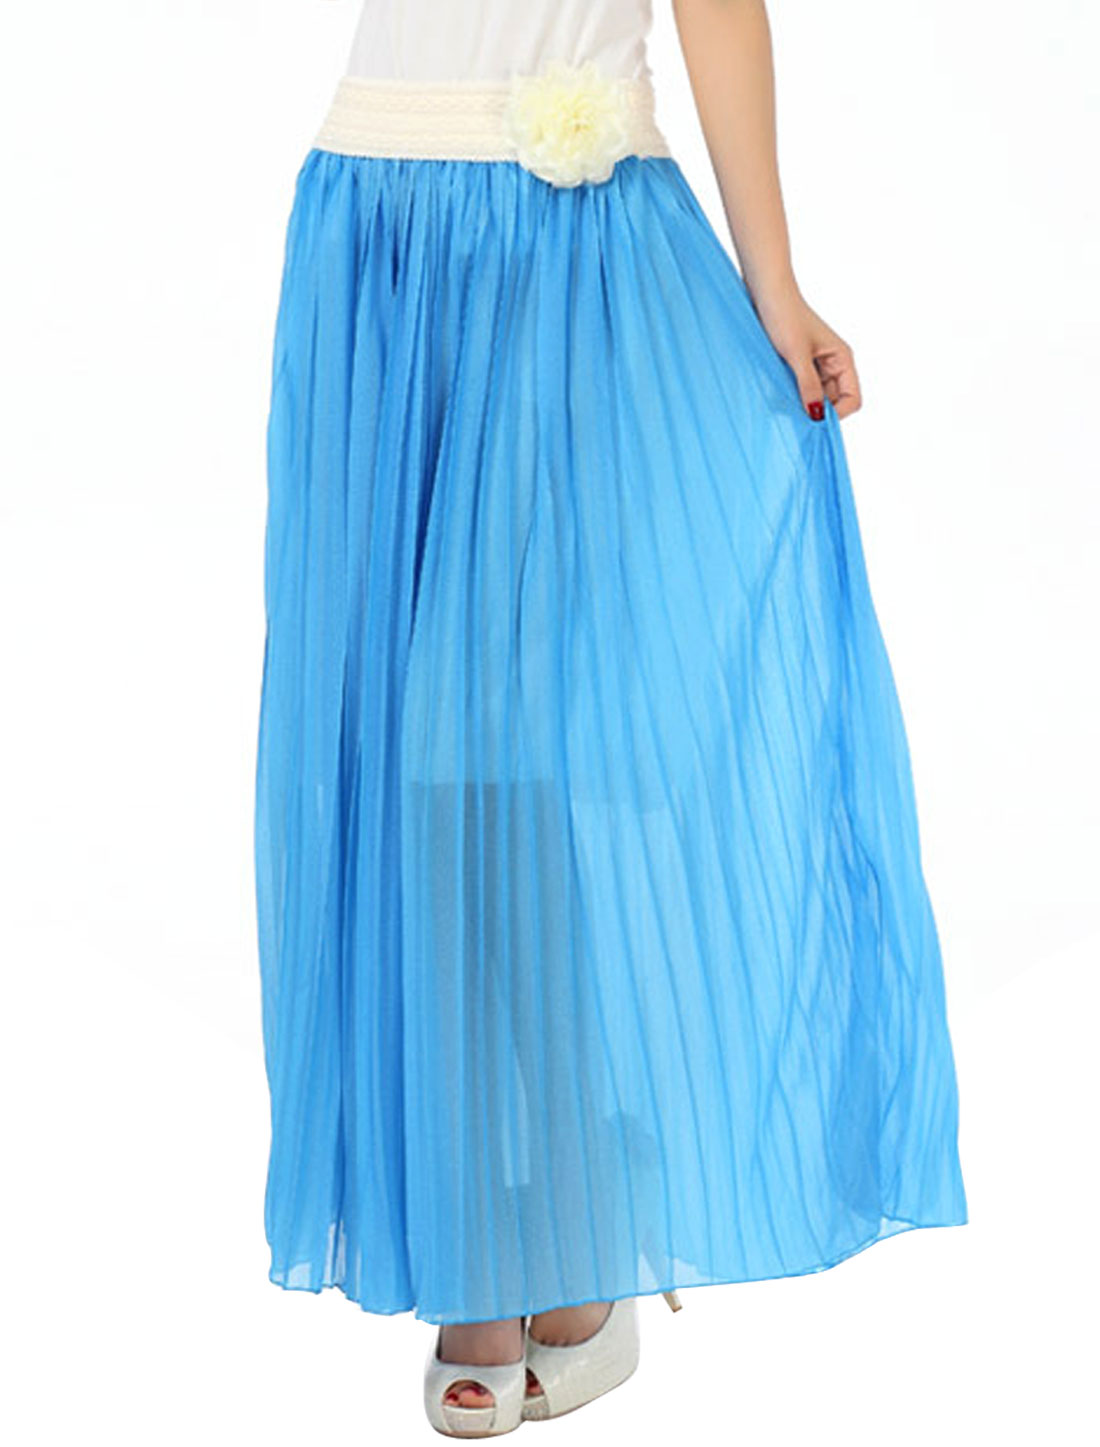 Lady Pleated Removable Flower Decor Elastic Waist Skirt Blue S